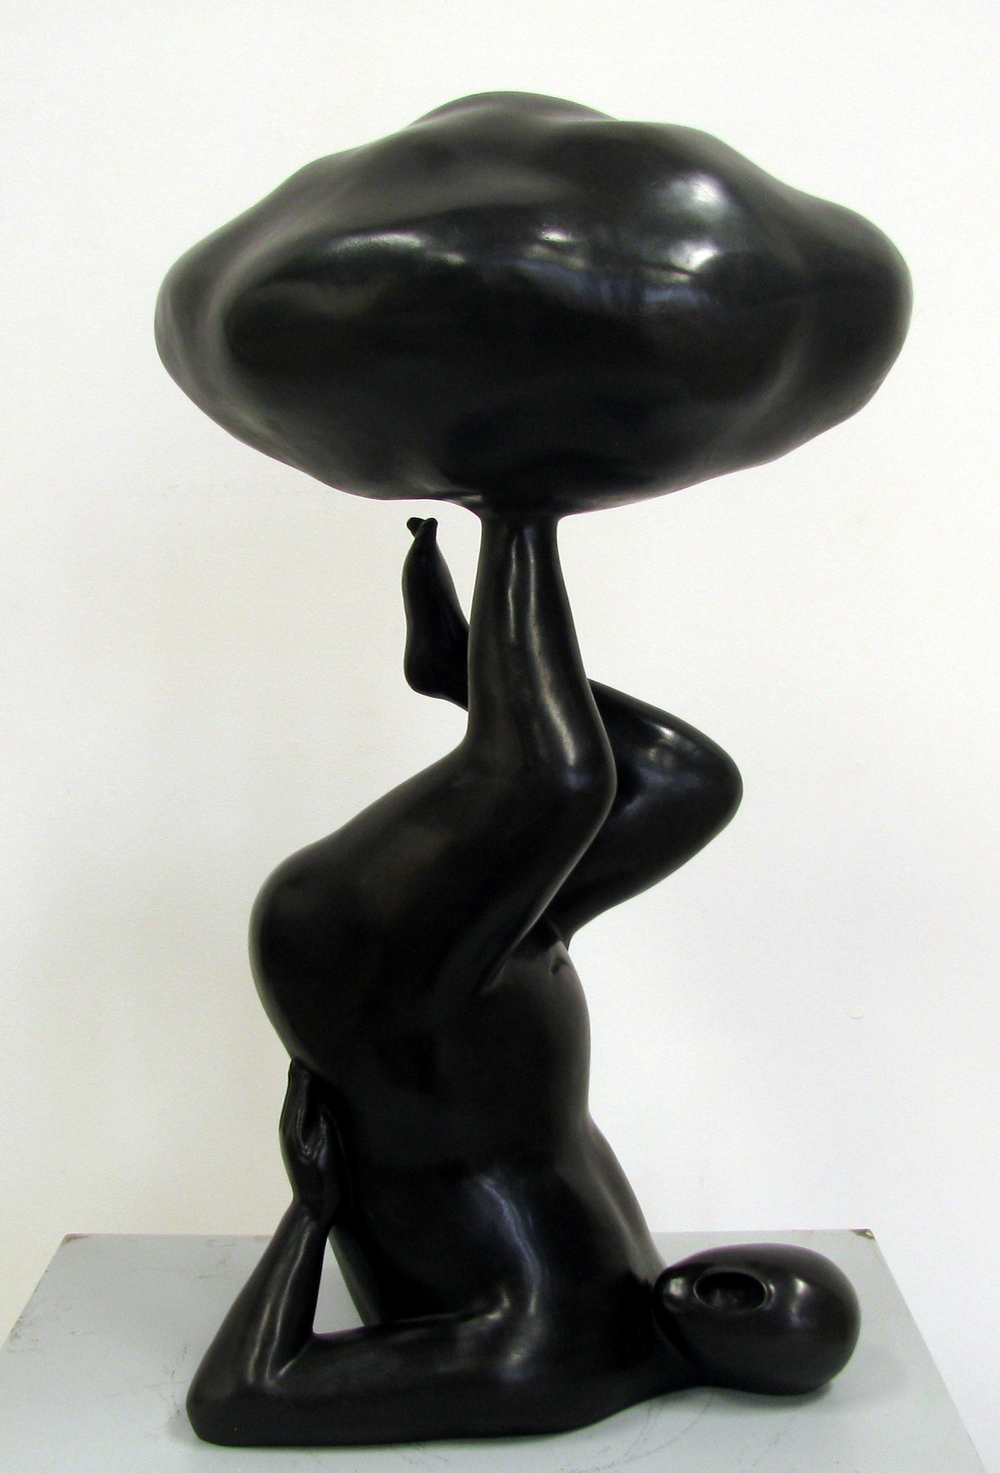 GUAN WEI   Up in the Clouds No. 4   2012   Bronze Sculpture   60 x 36 cm